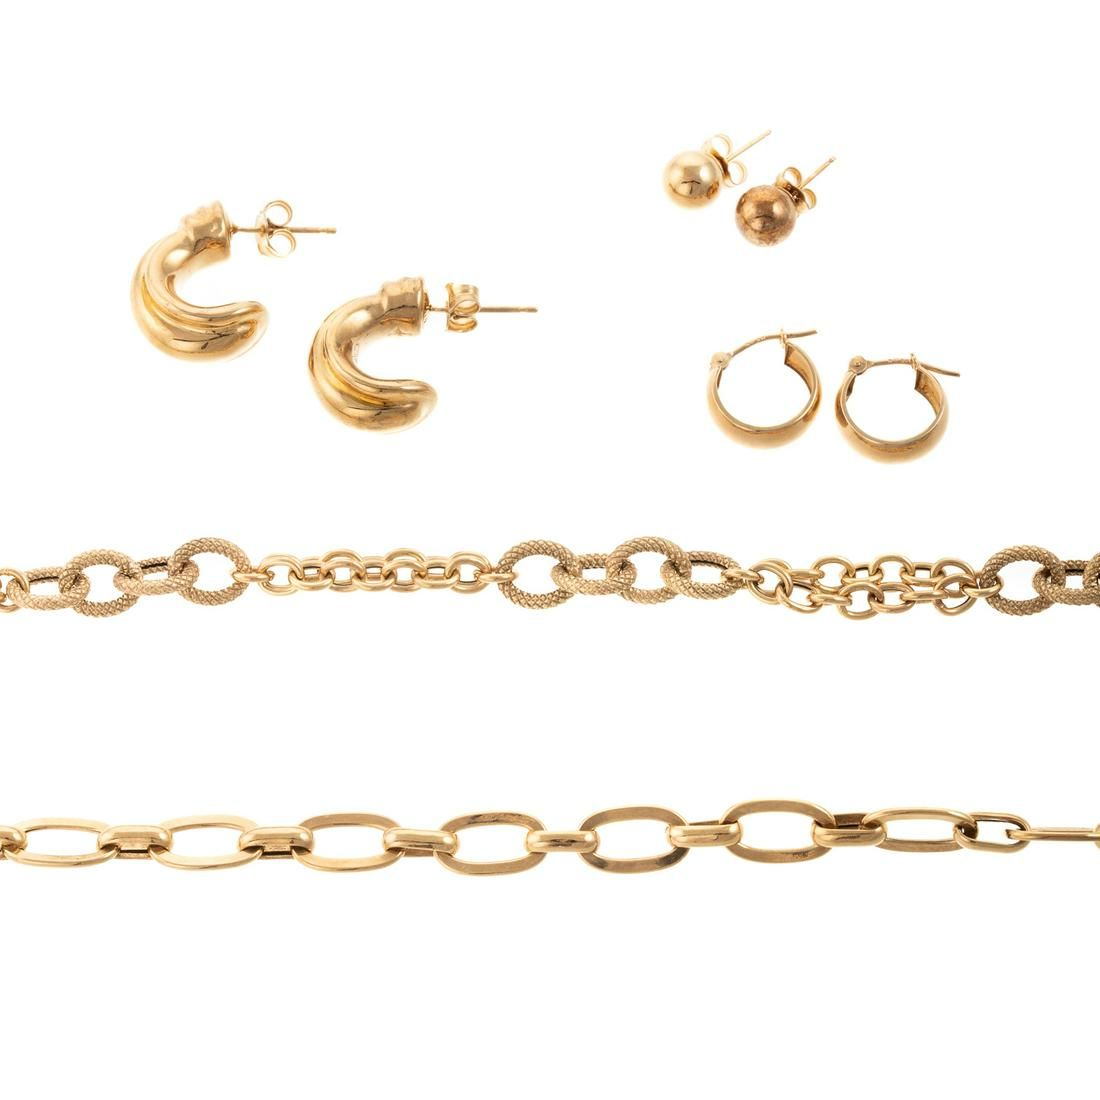 A Collection of Jewelry in 18K & 14K Yellow Gold